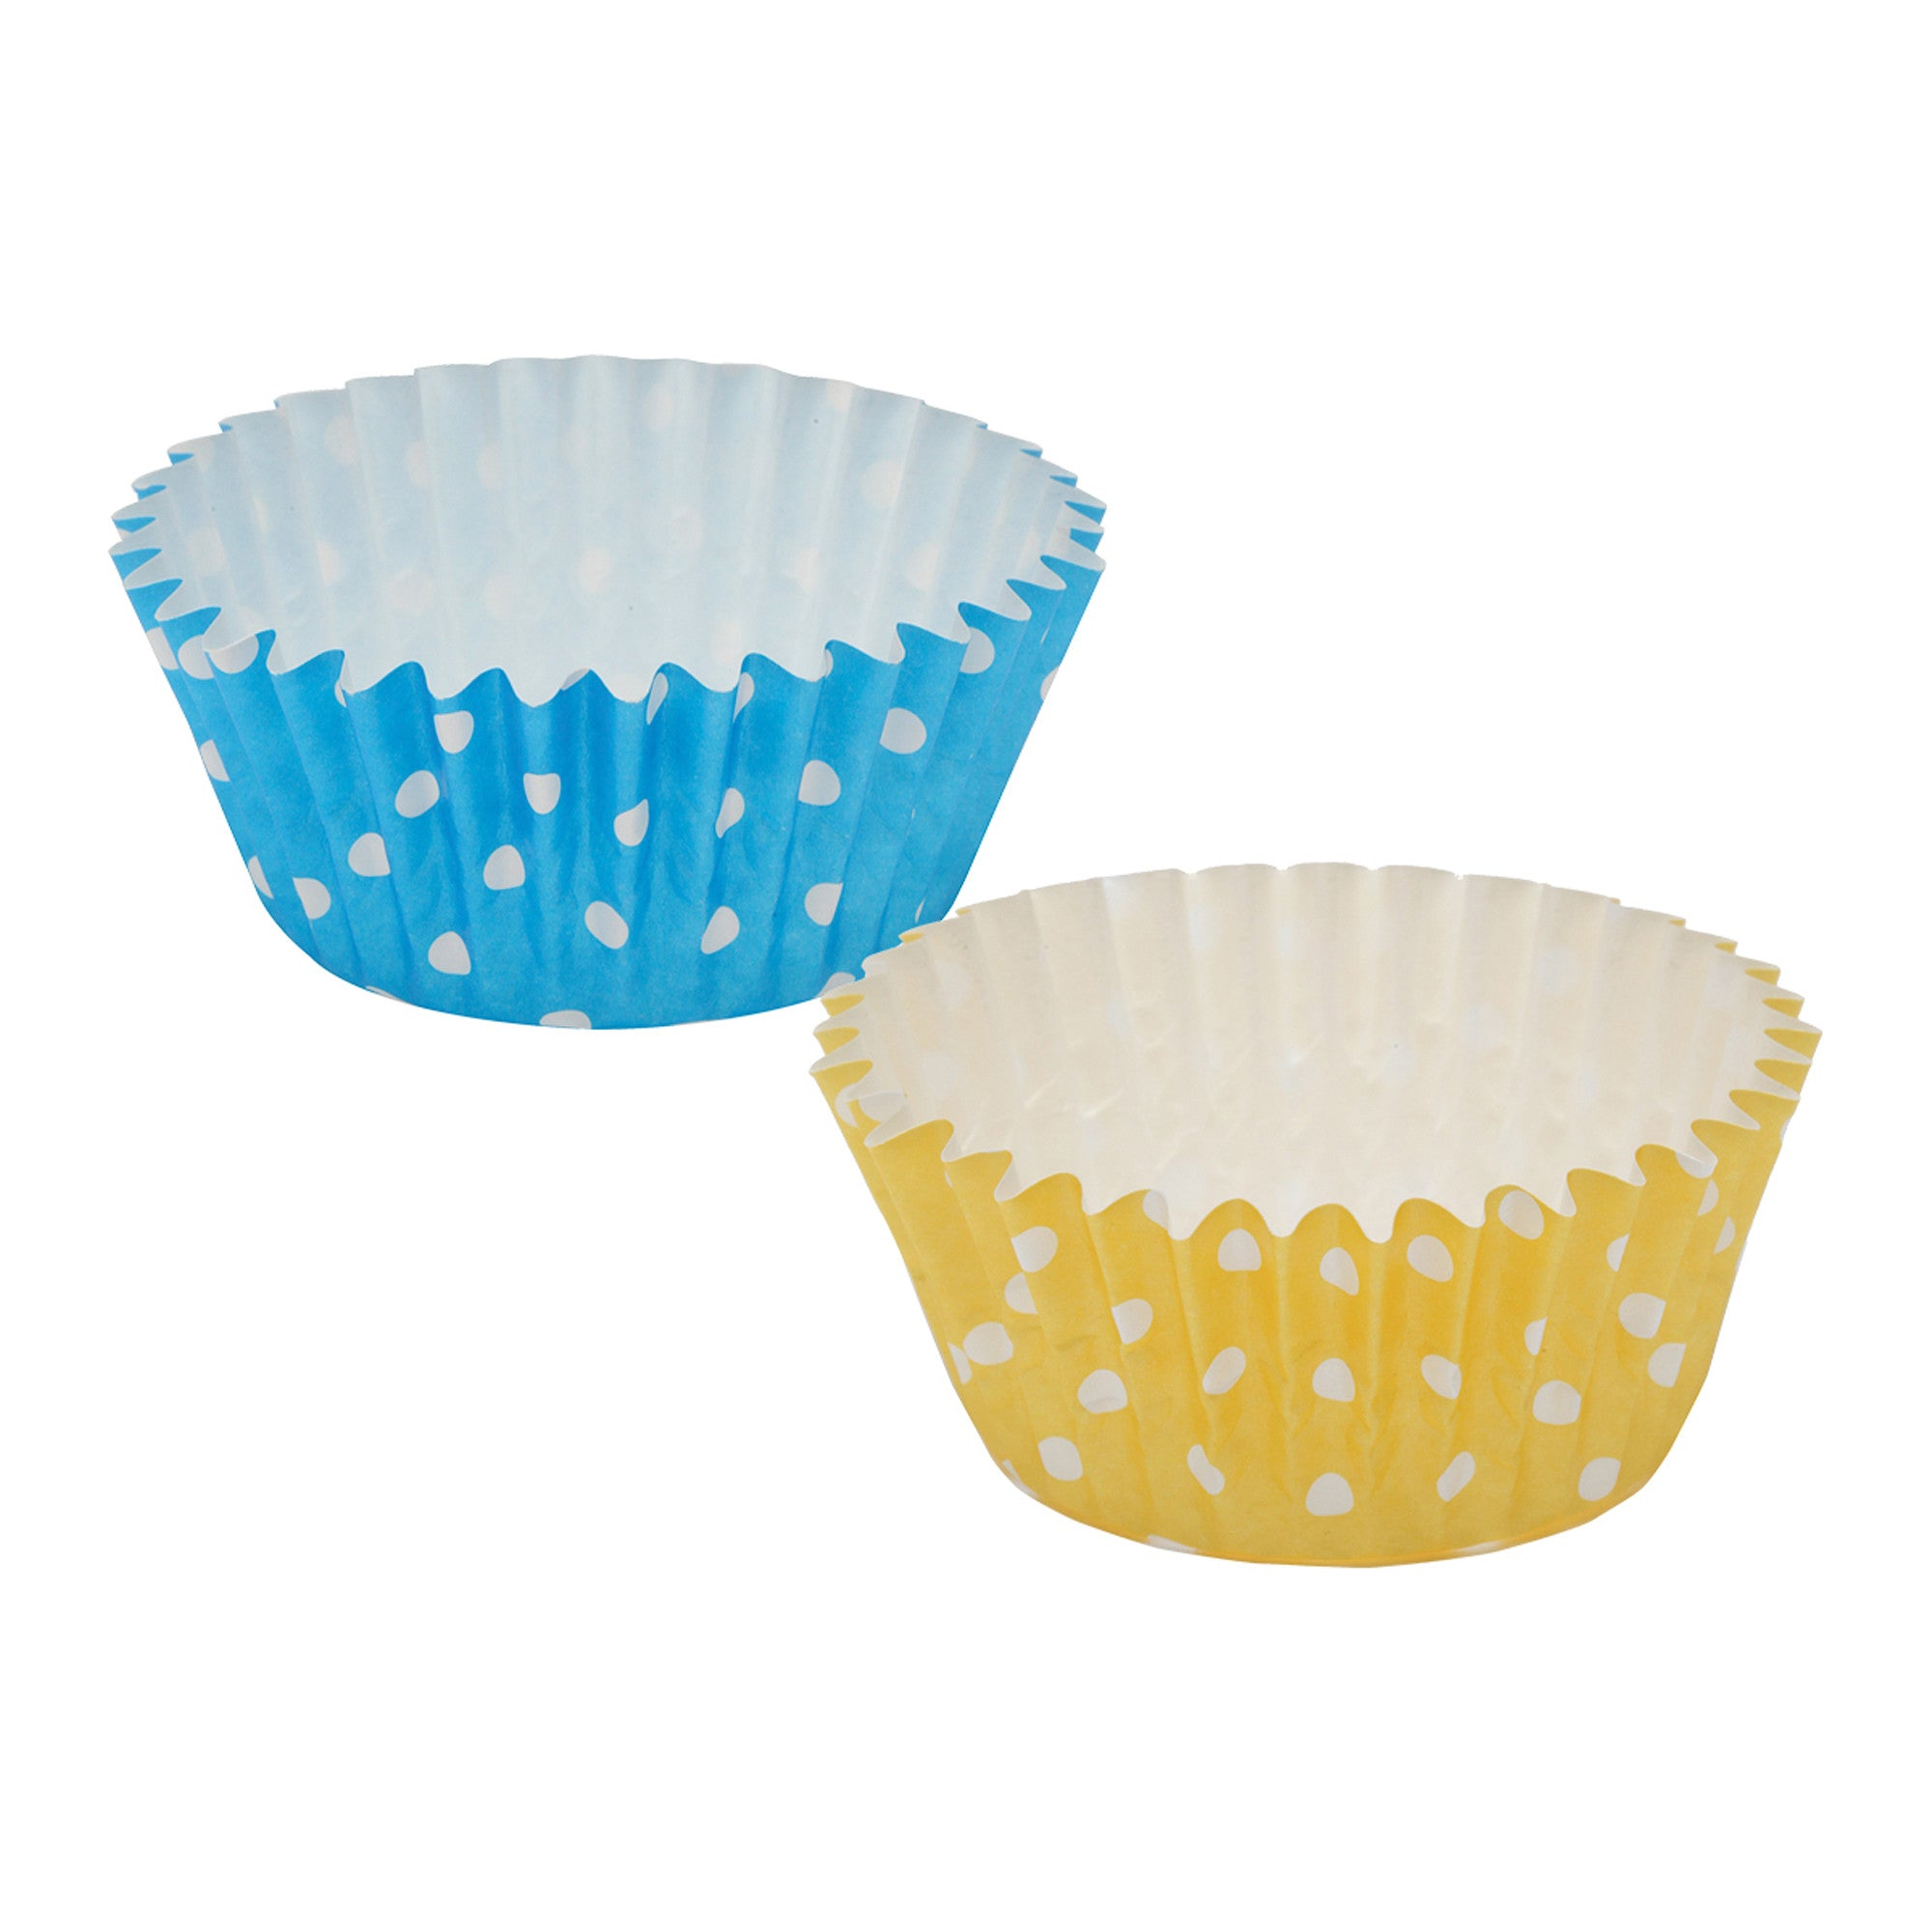 Cupcake Cups, 120-Piece Spring Assortment Set - Paper Bake Shop